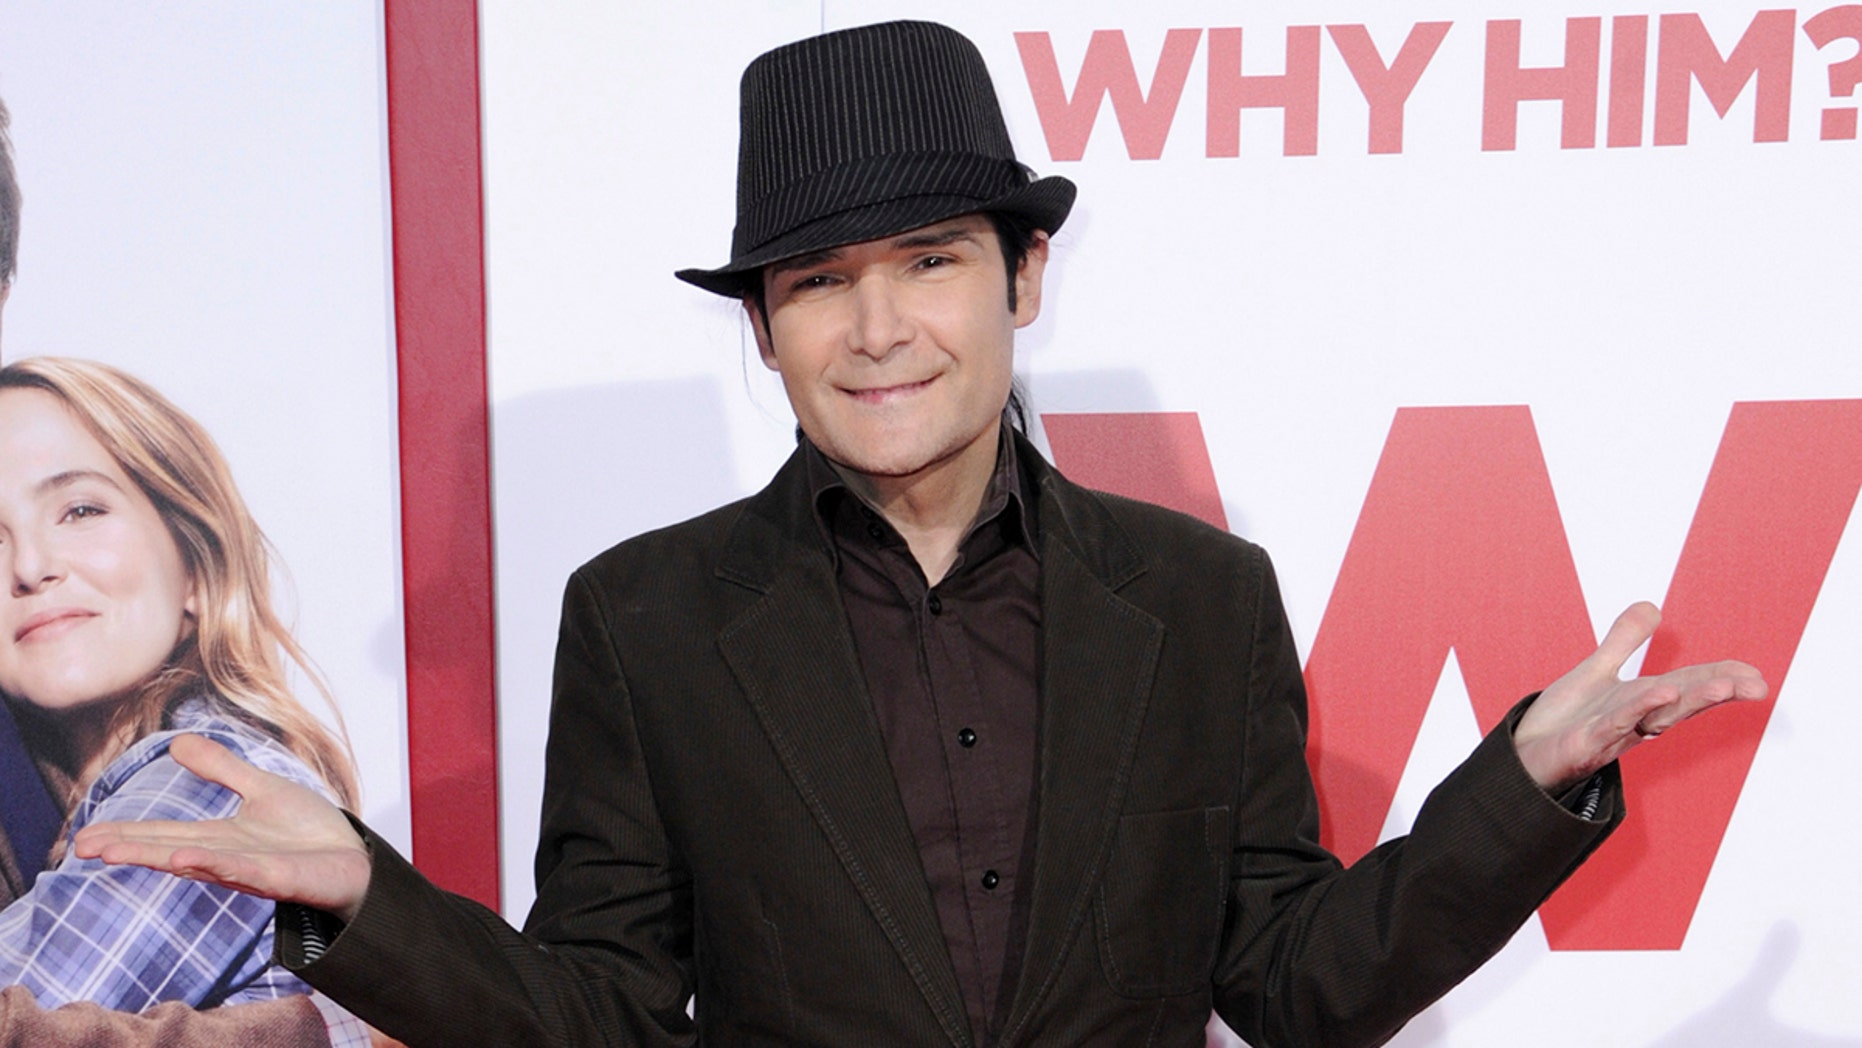 Corey Feldman was given a clean bill of health from doctors following 'stabbing' incident.